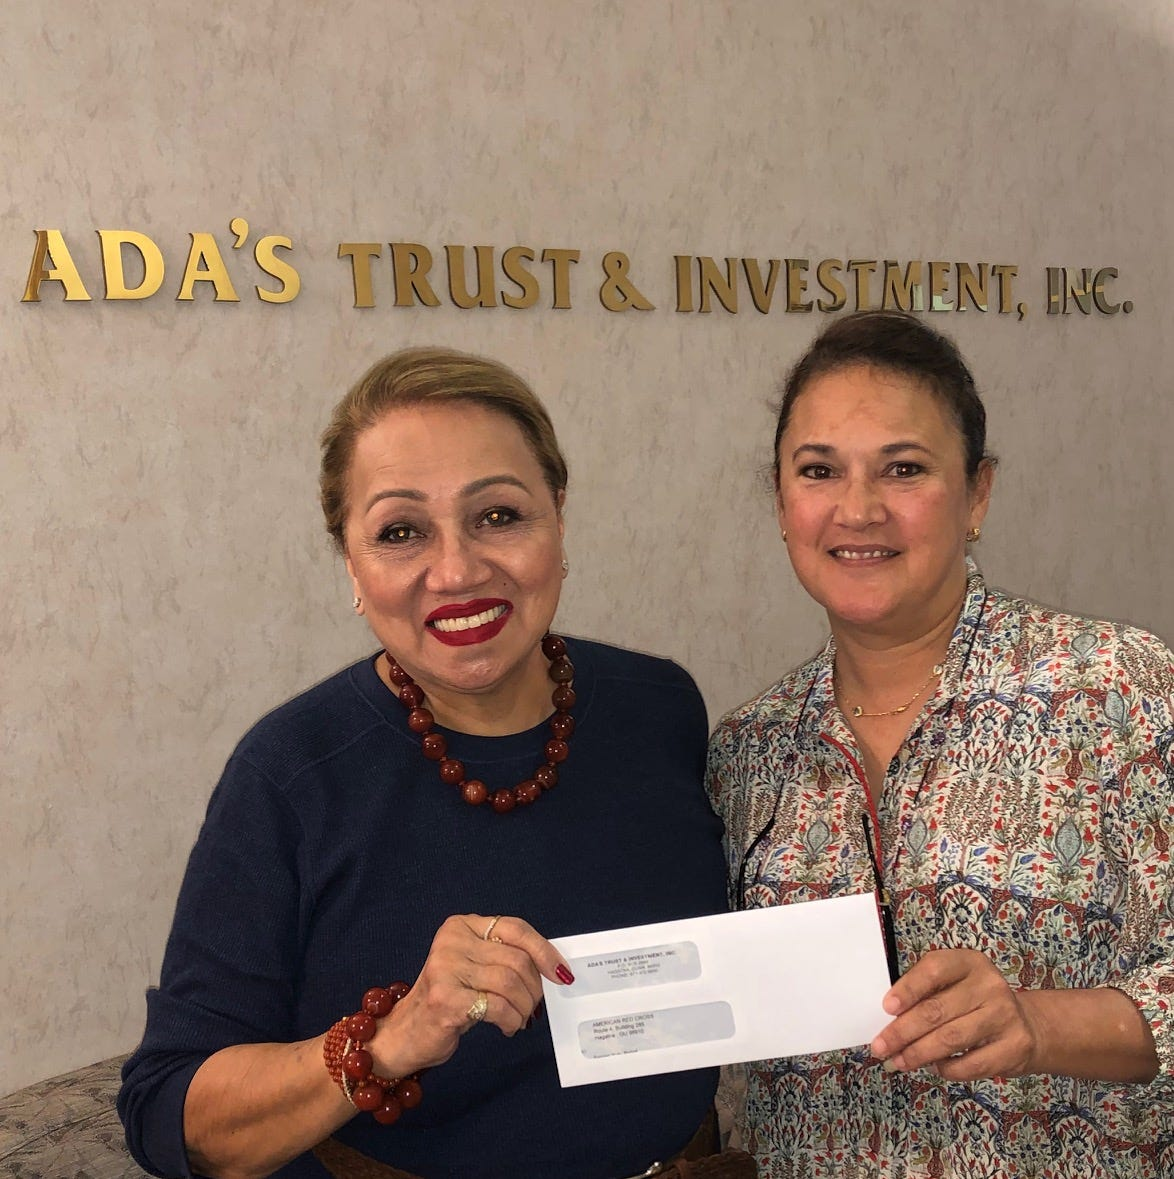 Ada's Trust and Investment donates $10,000 to assist the victims of Super Typhoon Yutu